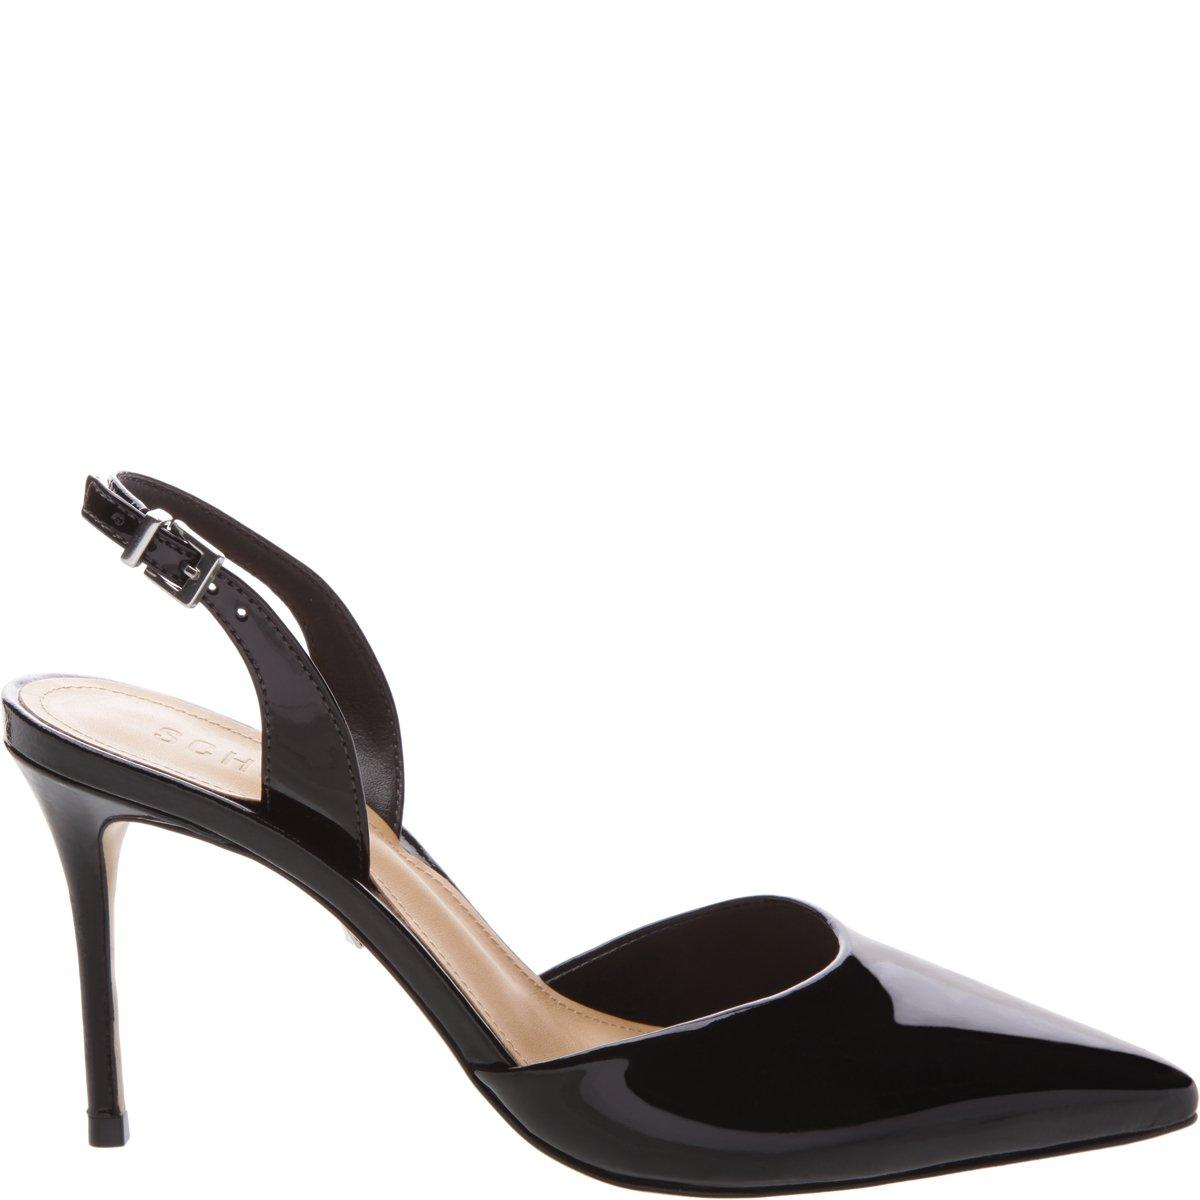 71cad2dd2d2 FINAL SALE - MAY NOT BE RETURNED OR EXCHANGED Elevate your look with the  these extra chic slingback pumps. Featured in black patent leather